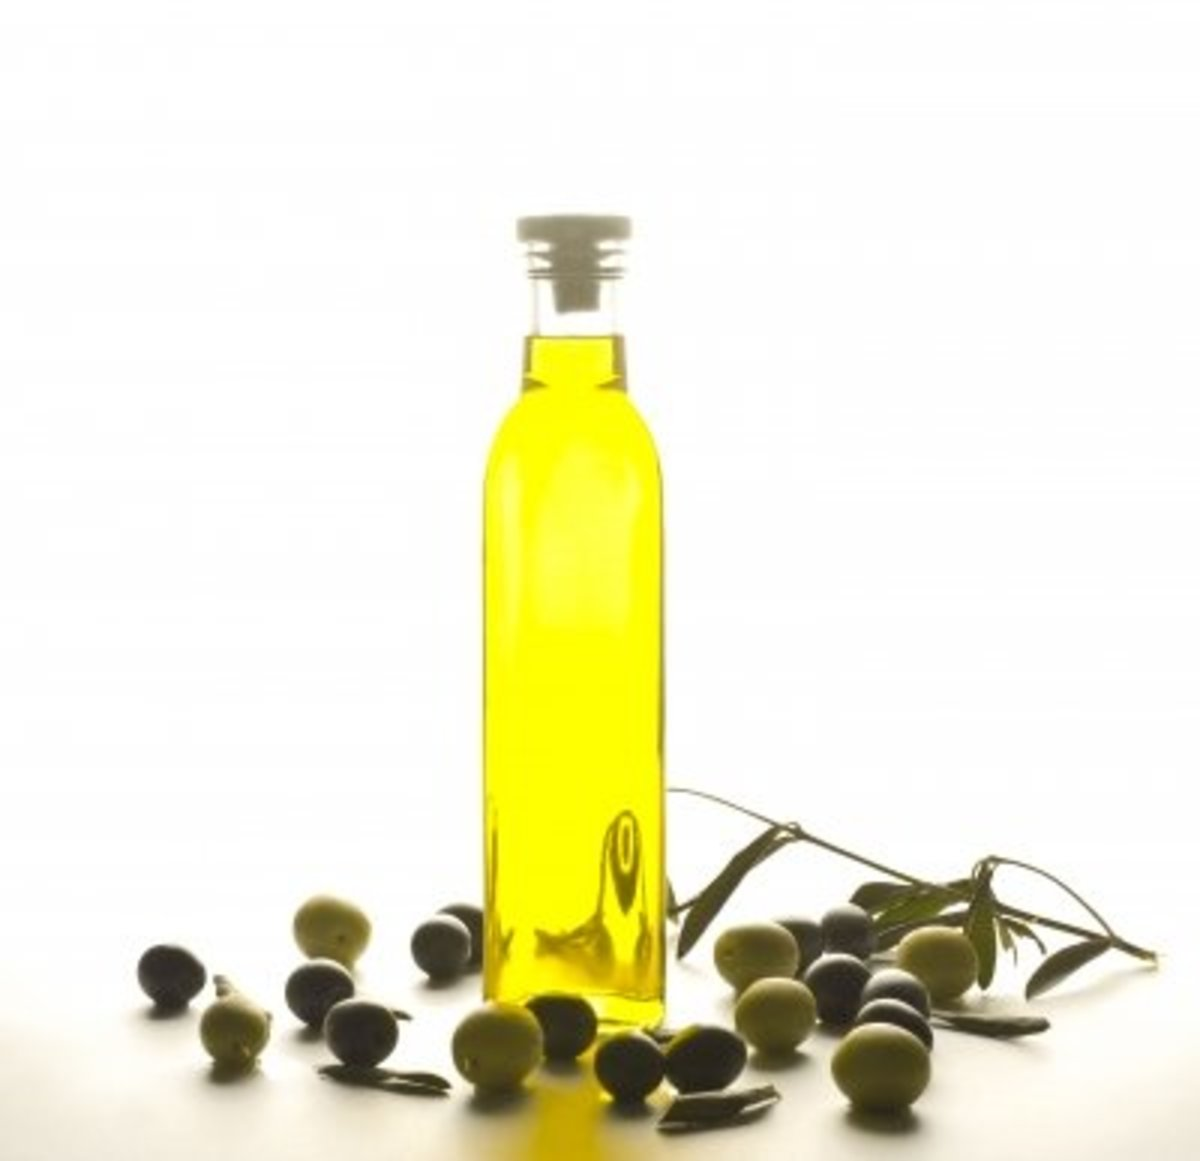 Organic skin care ingredients are the best to use, if possible, as they are 100% chemical-free.